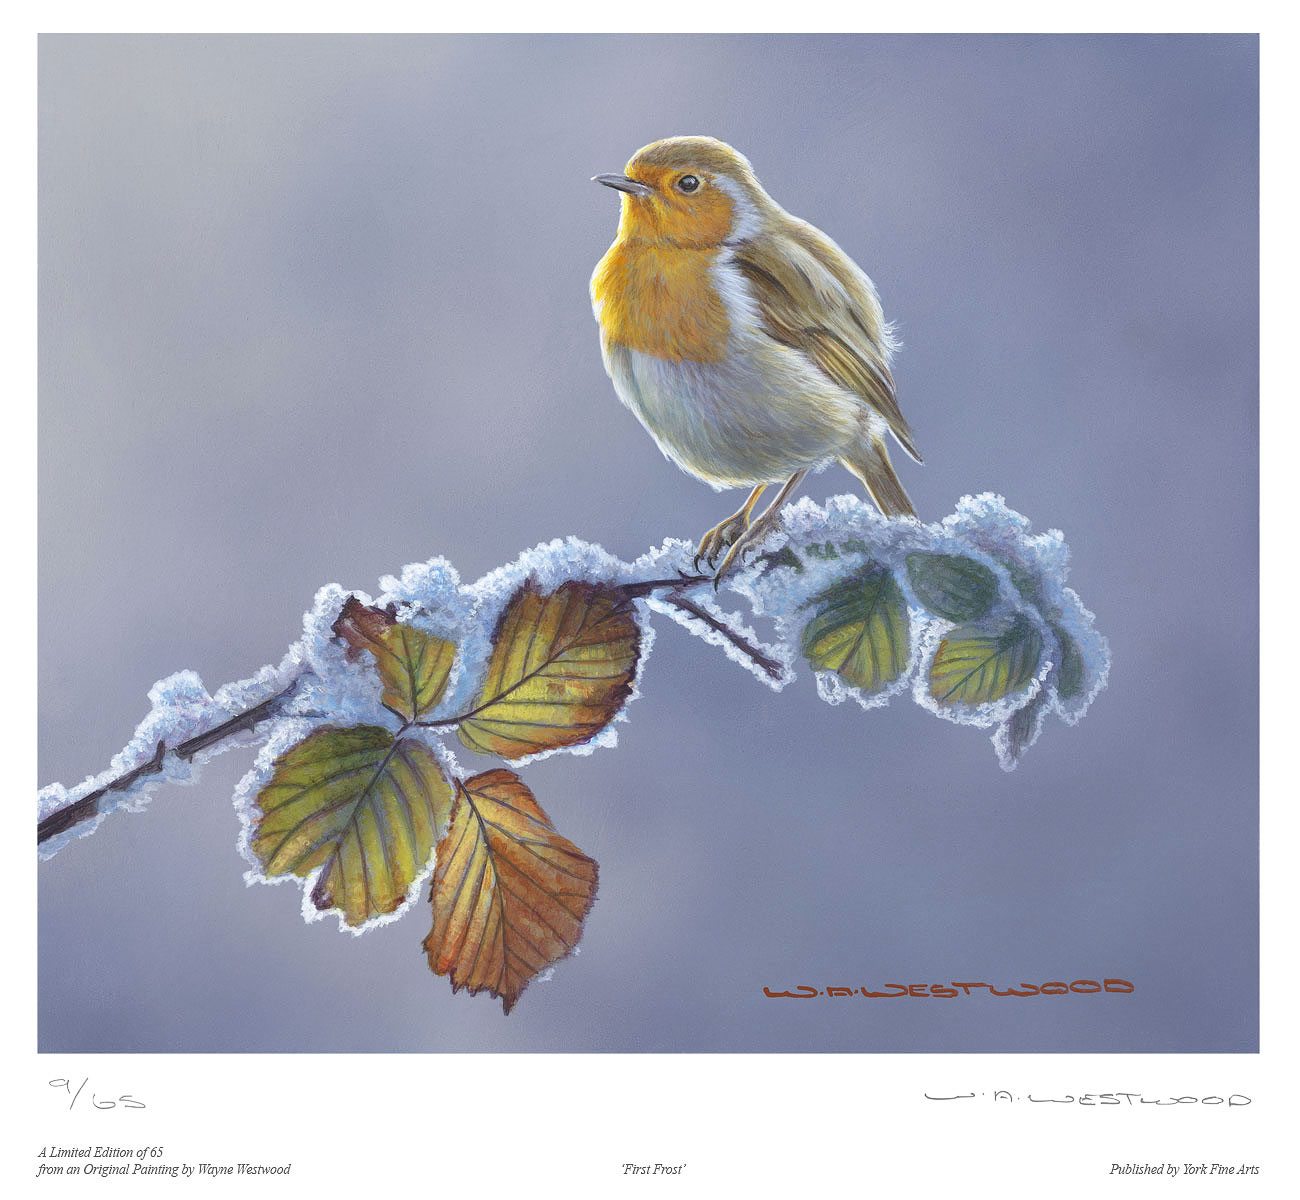 Wayne Westwood, Signed limited edition print, First Frost Click to enlarge